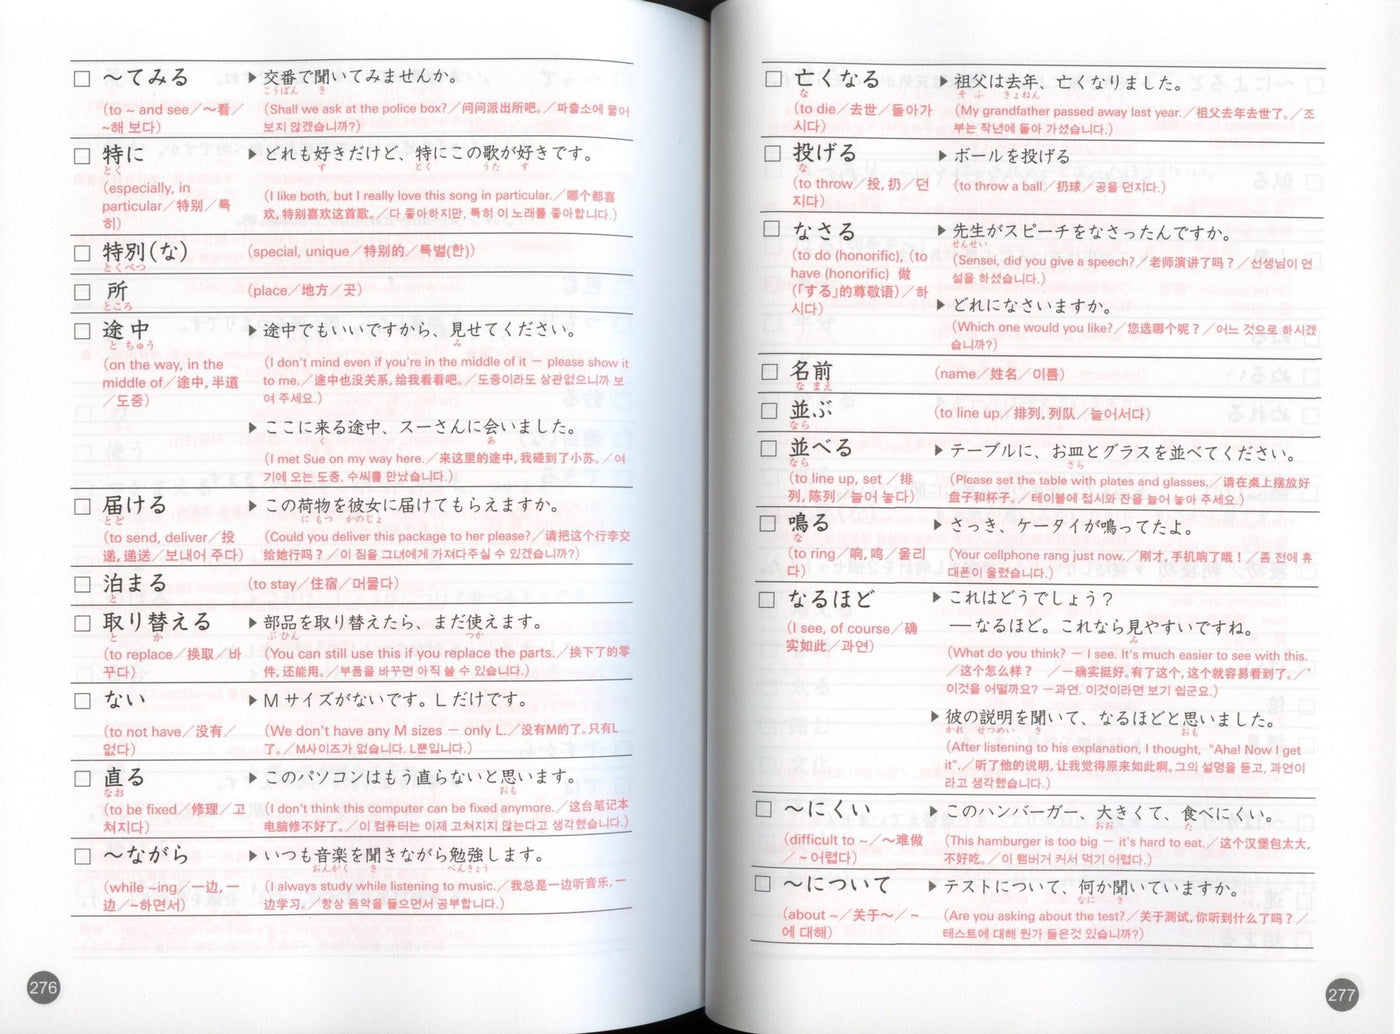 JLPT Preparation Book Speed Master - Quick Mastery of N4 & N5 Vocabulary  (Basic 1800)